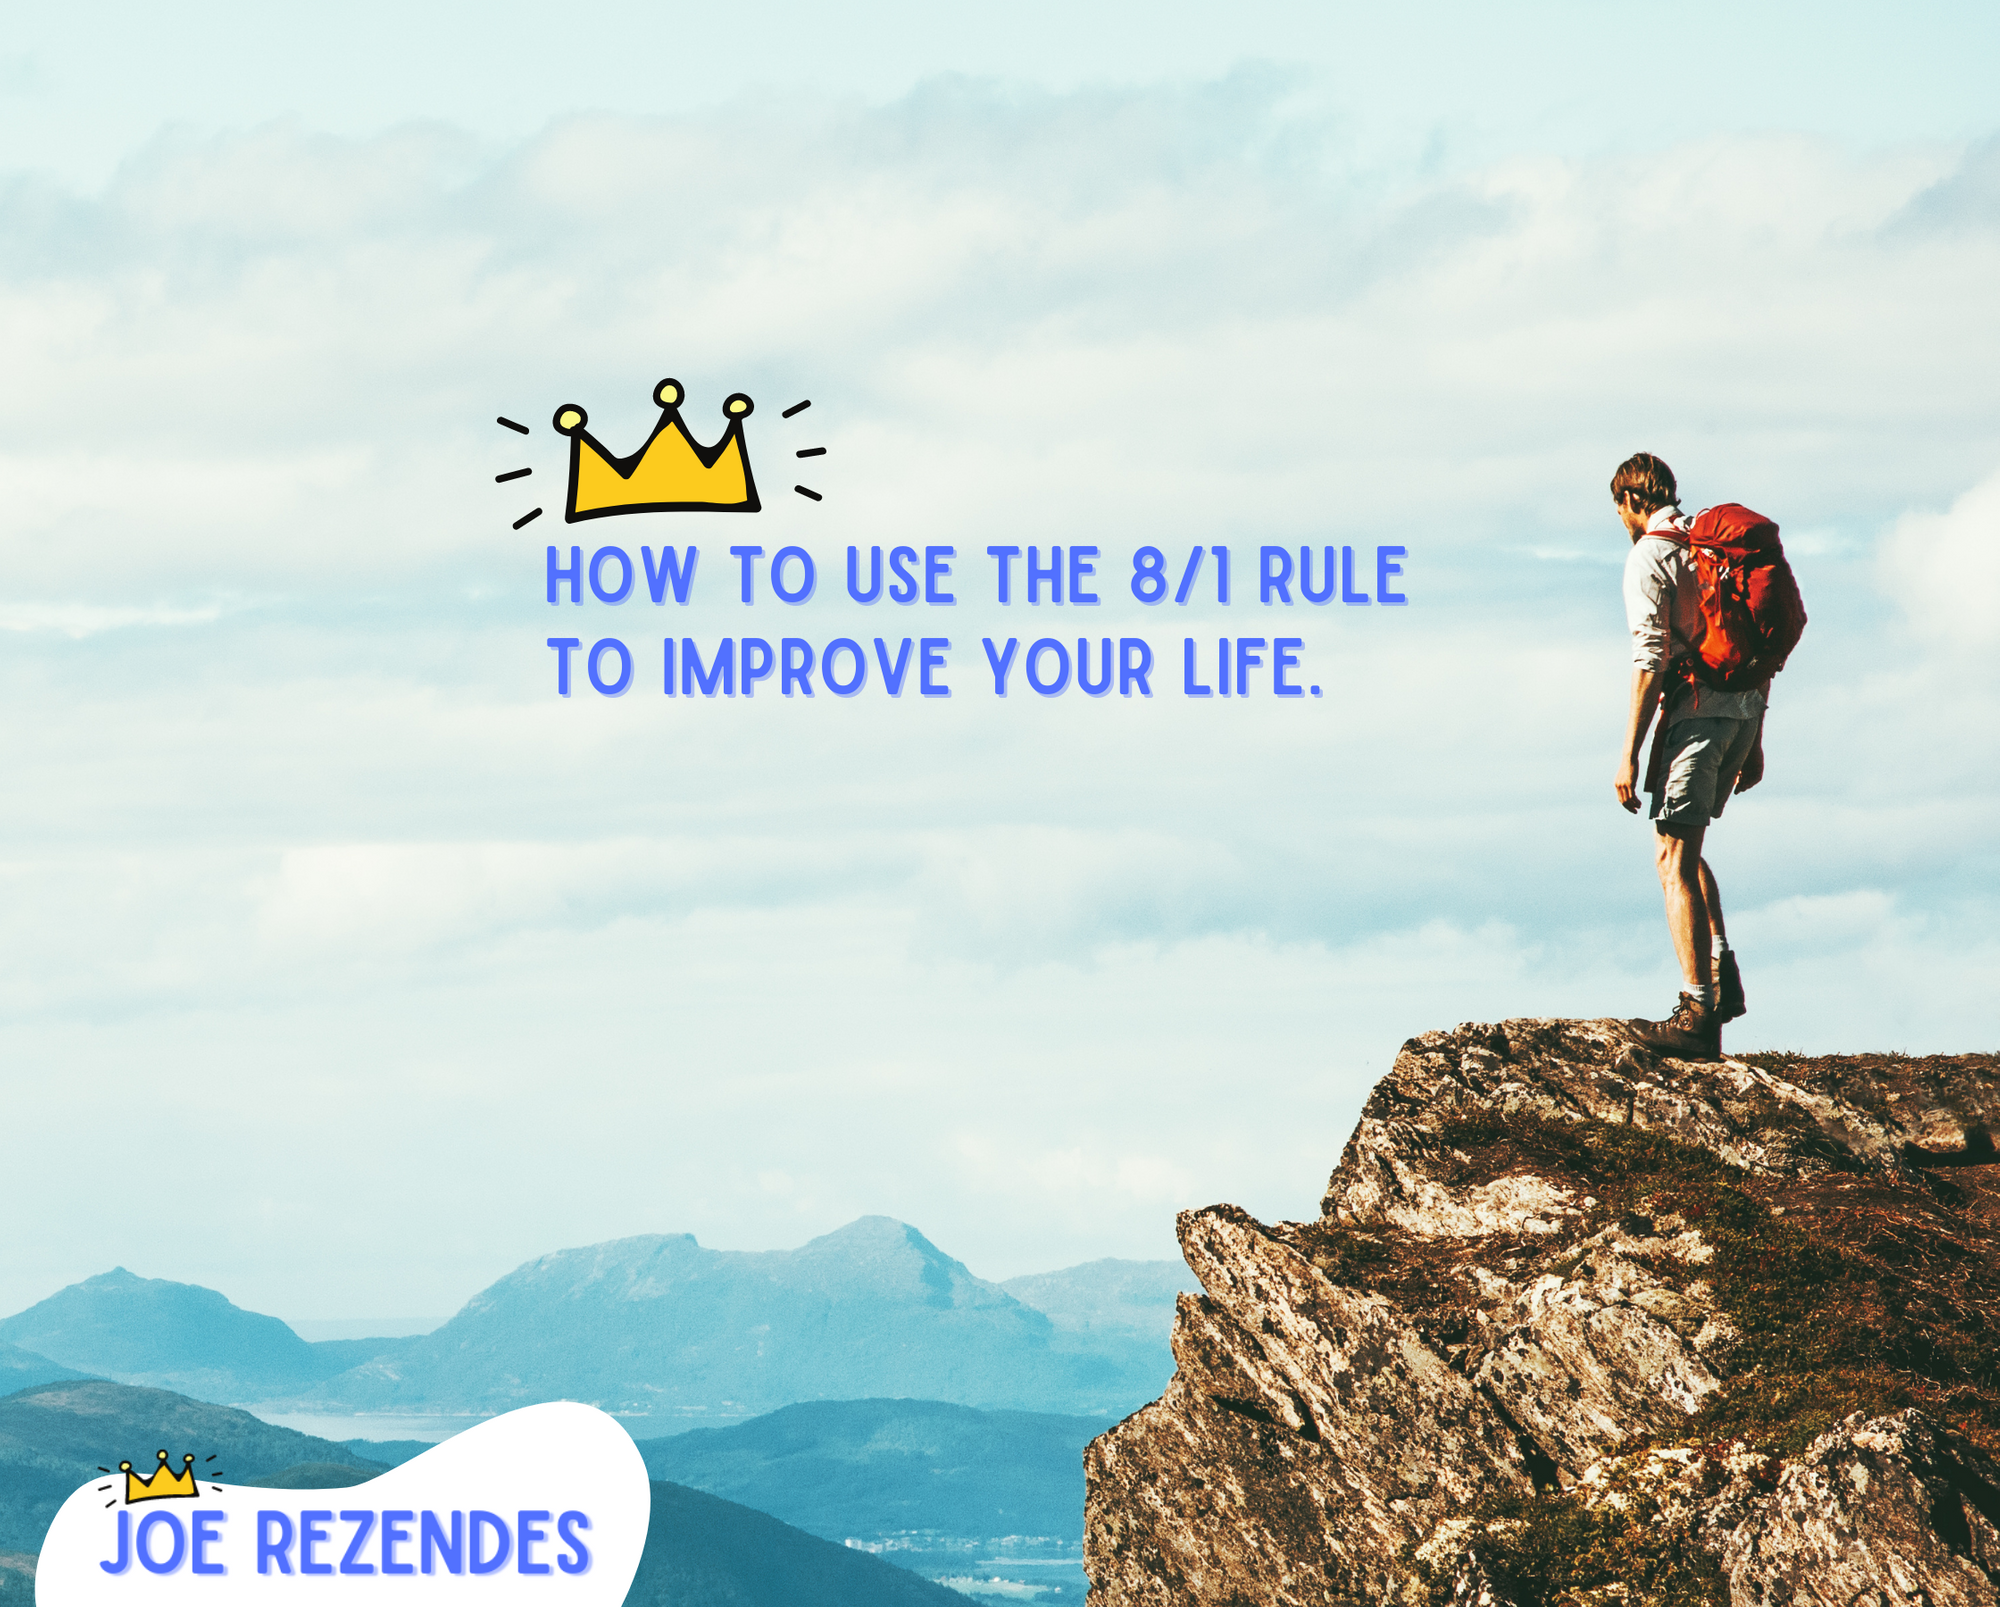 How to Use the 8/1 Rule to Improve Your Life